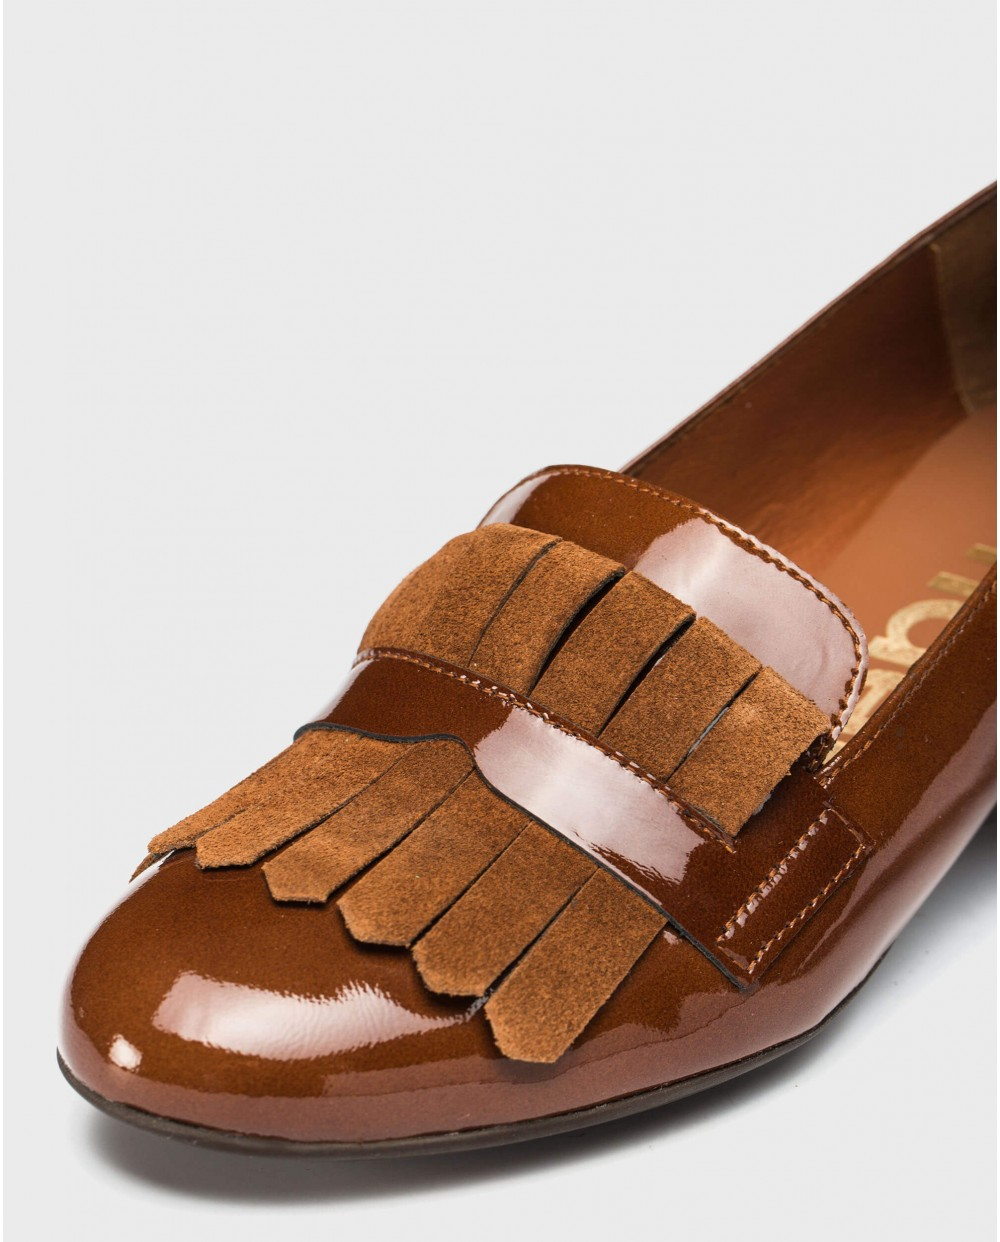 Wonders-Flat Shoes-Ballet pump with fringe detail